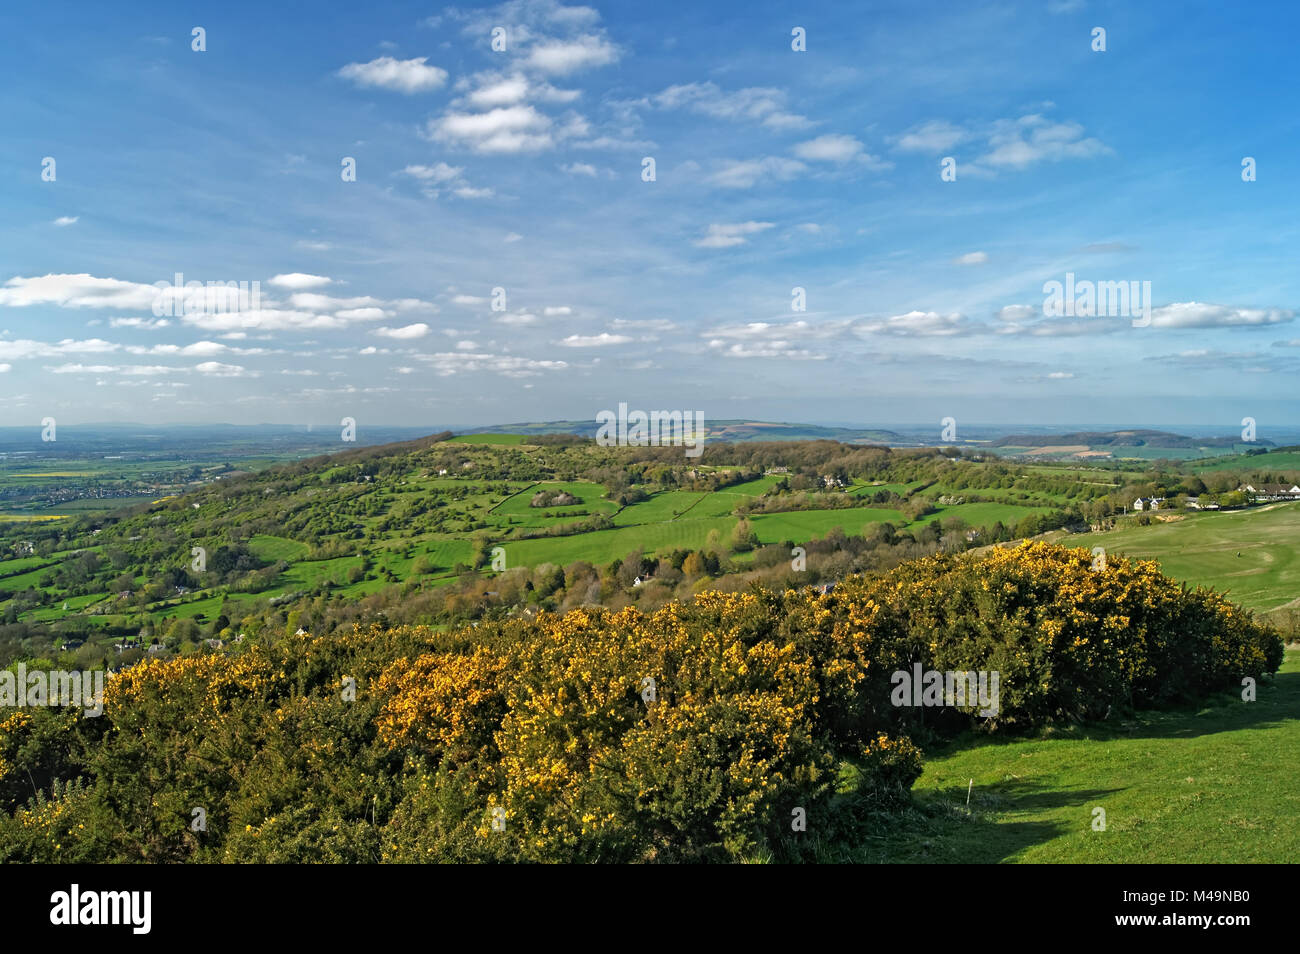 UK,Gloucestershire,Cheltenham,View from Cleve Hill - Stock Image